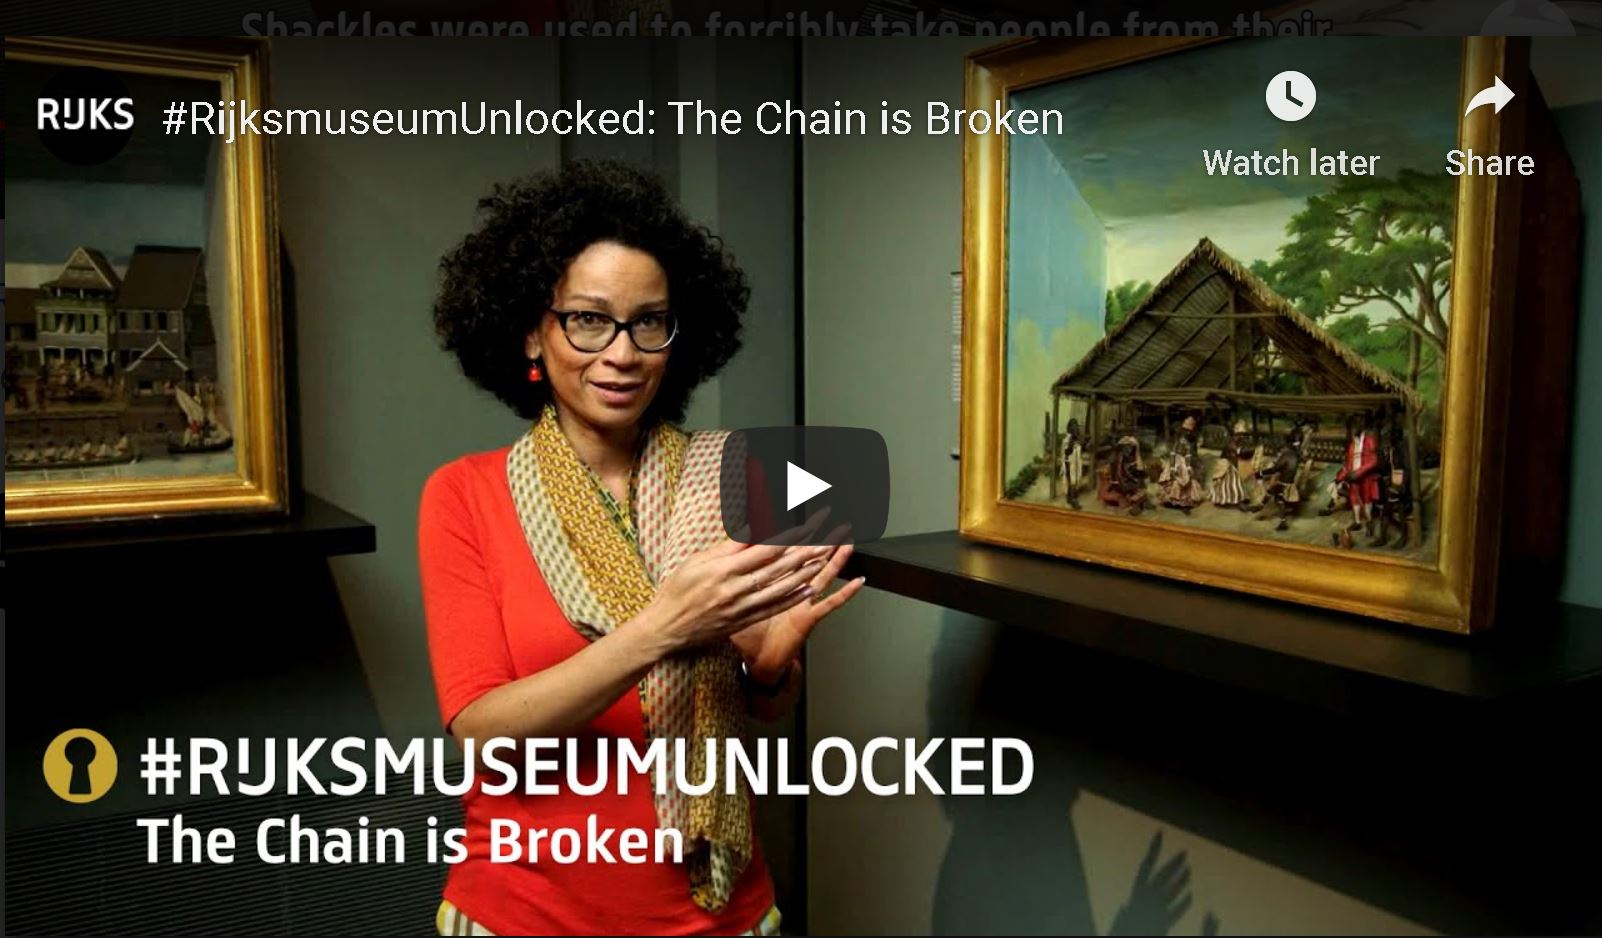 Learn more about the history of slavery in Suriname and the Dutch Antilles and its abolishment in the new episode of #RijksmuseumUnlocked.